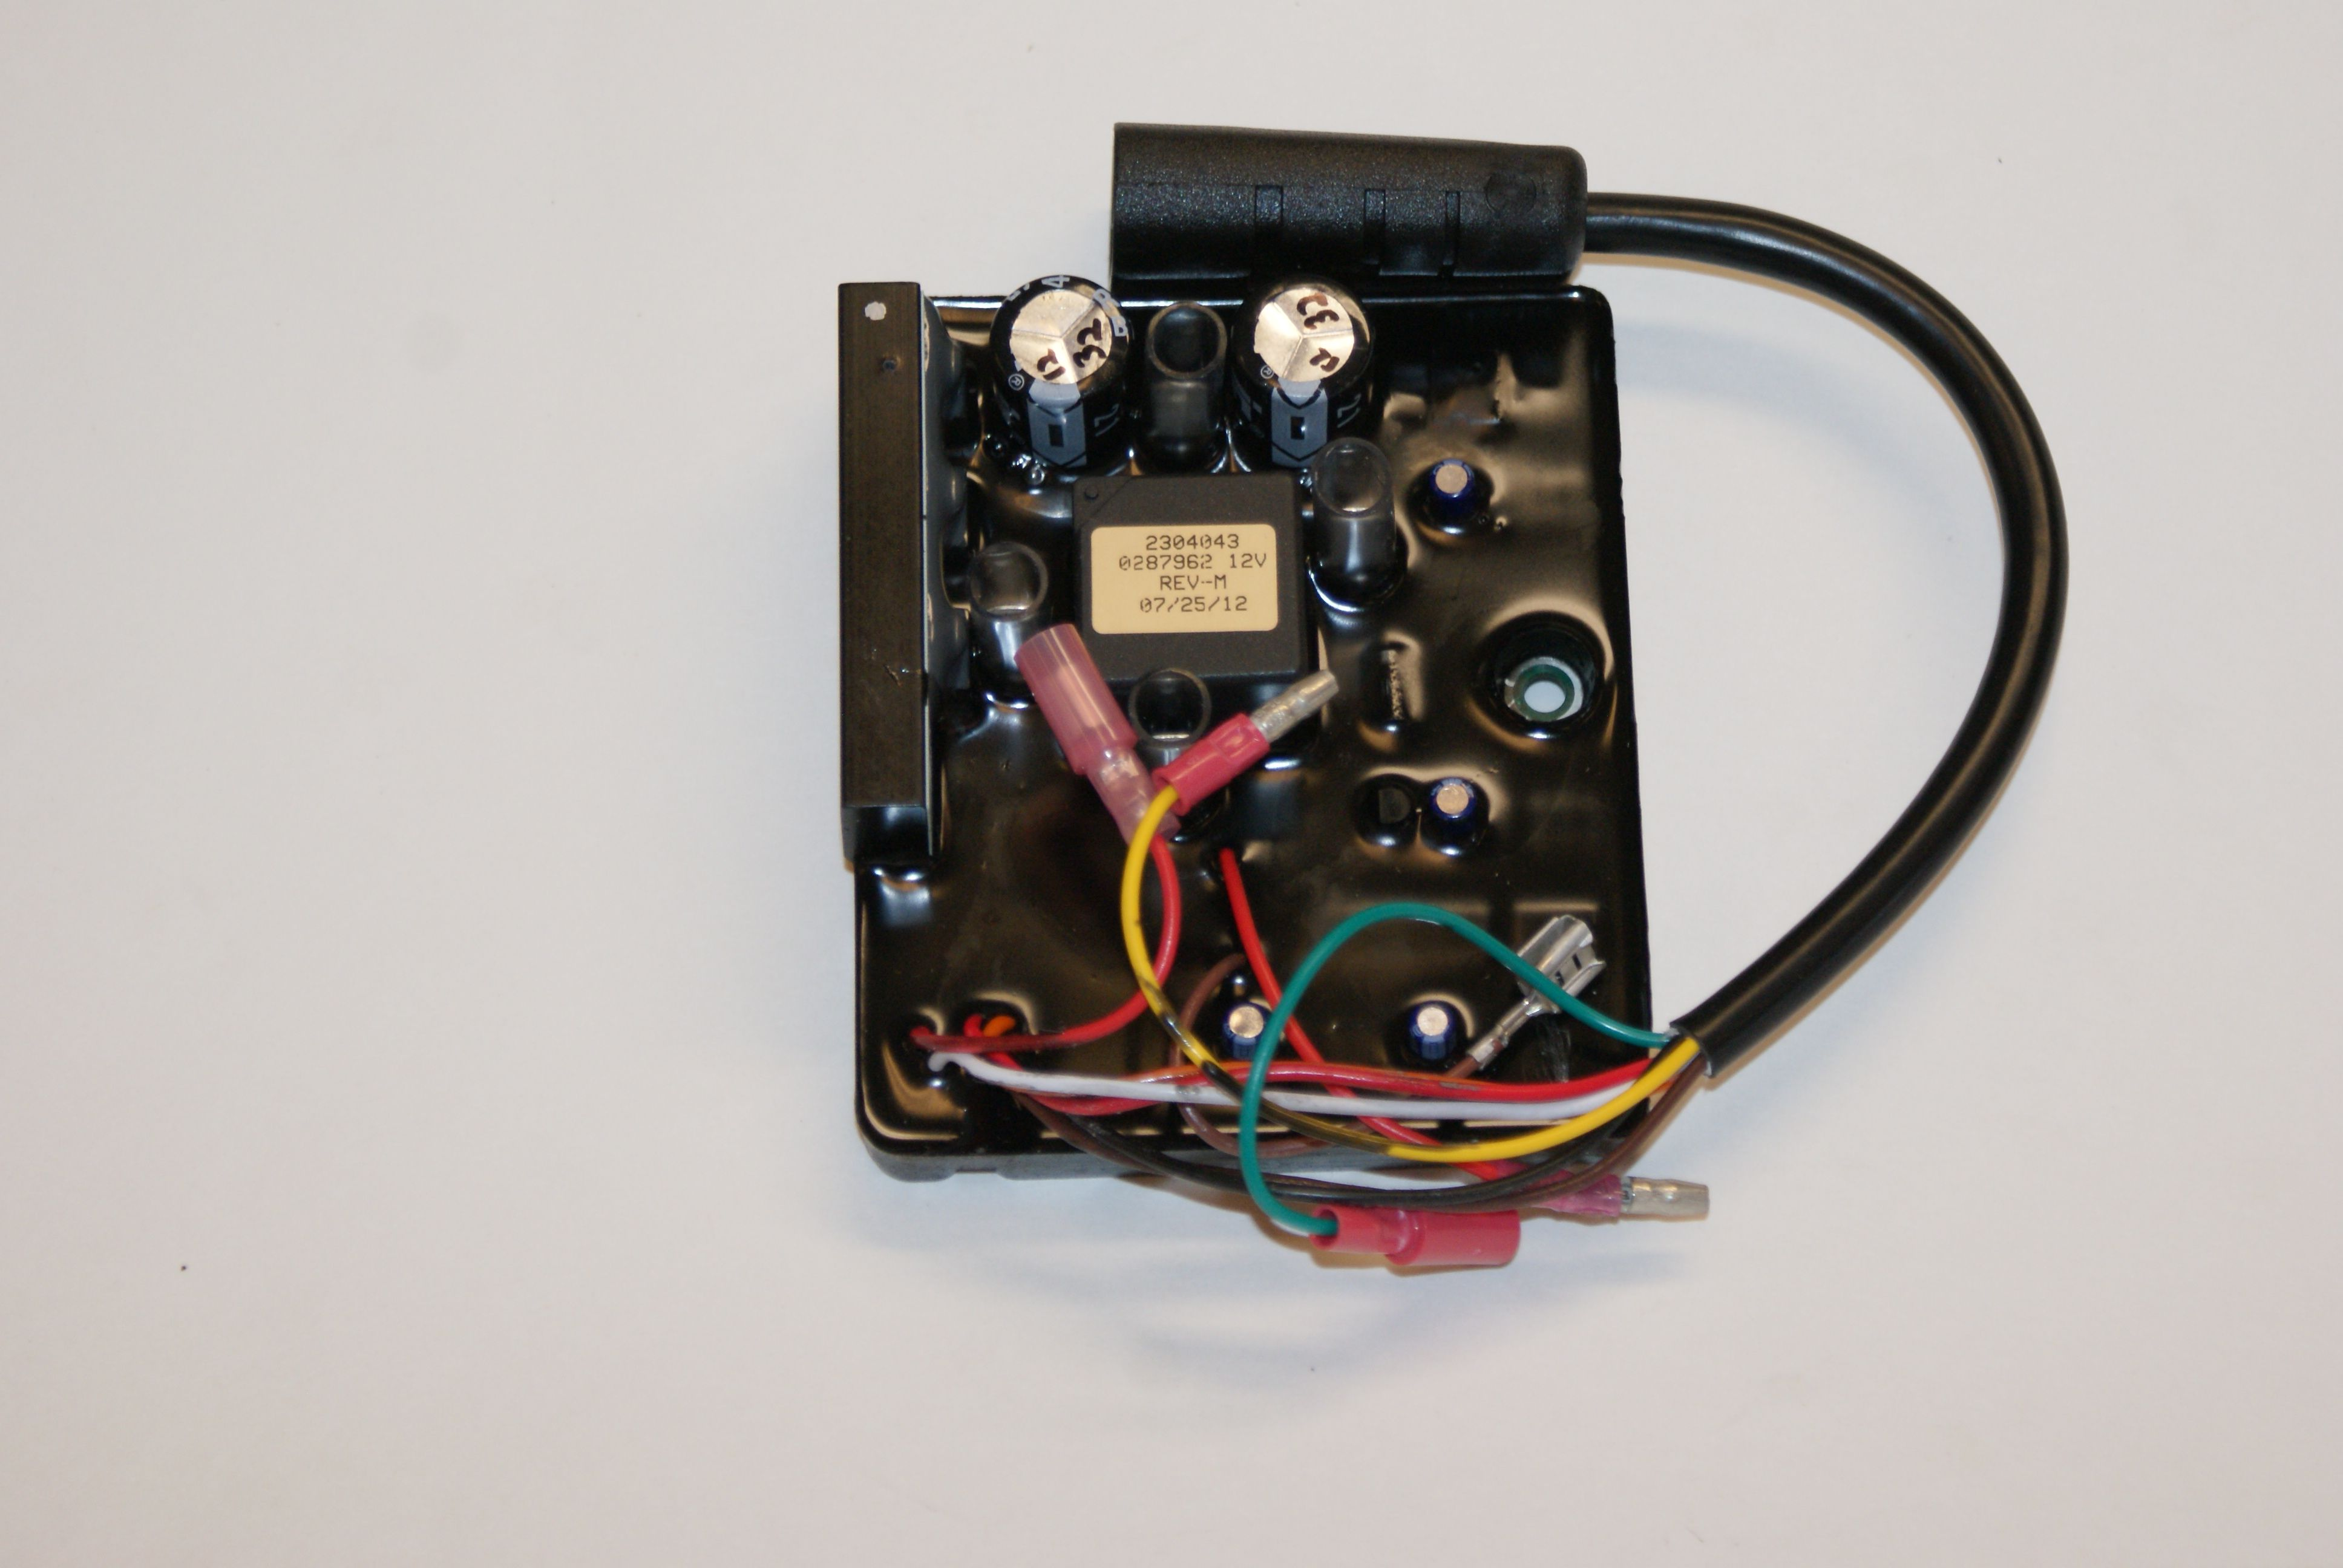 hight resolution of control board for legacy minn kota power drive bow mounts